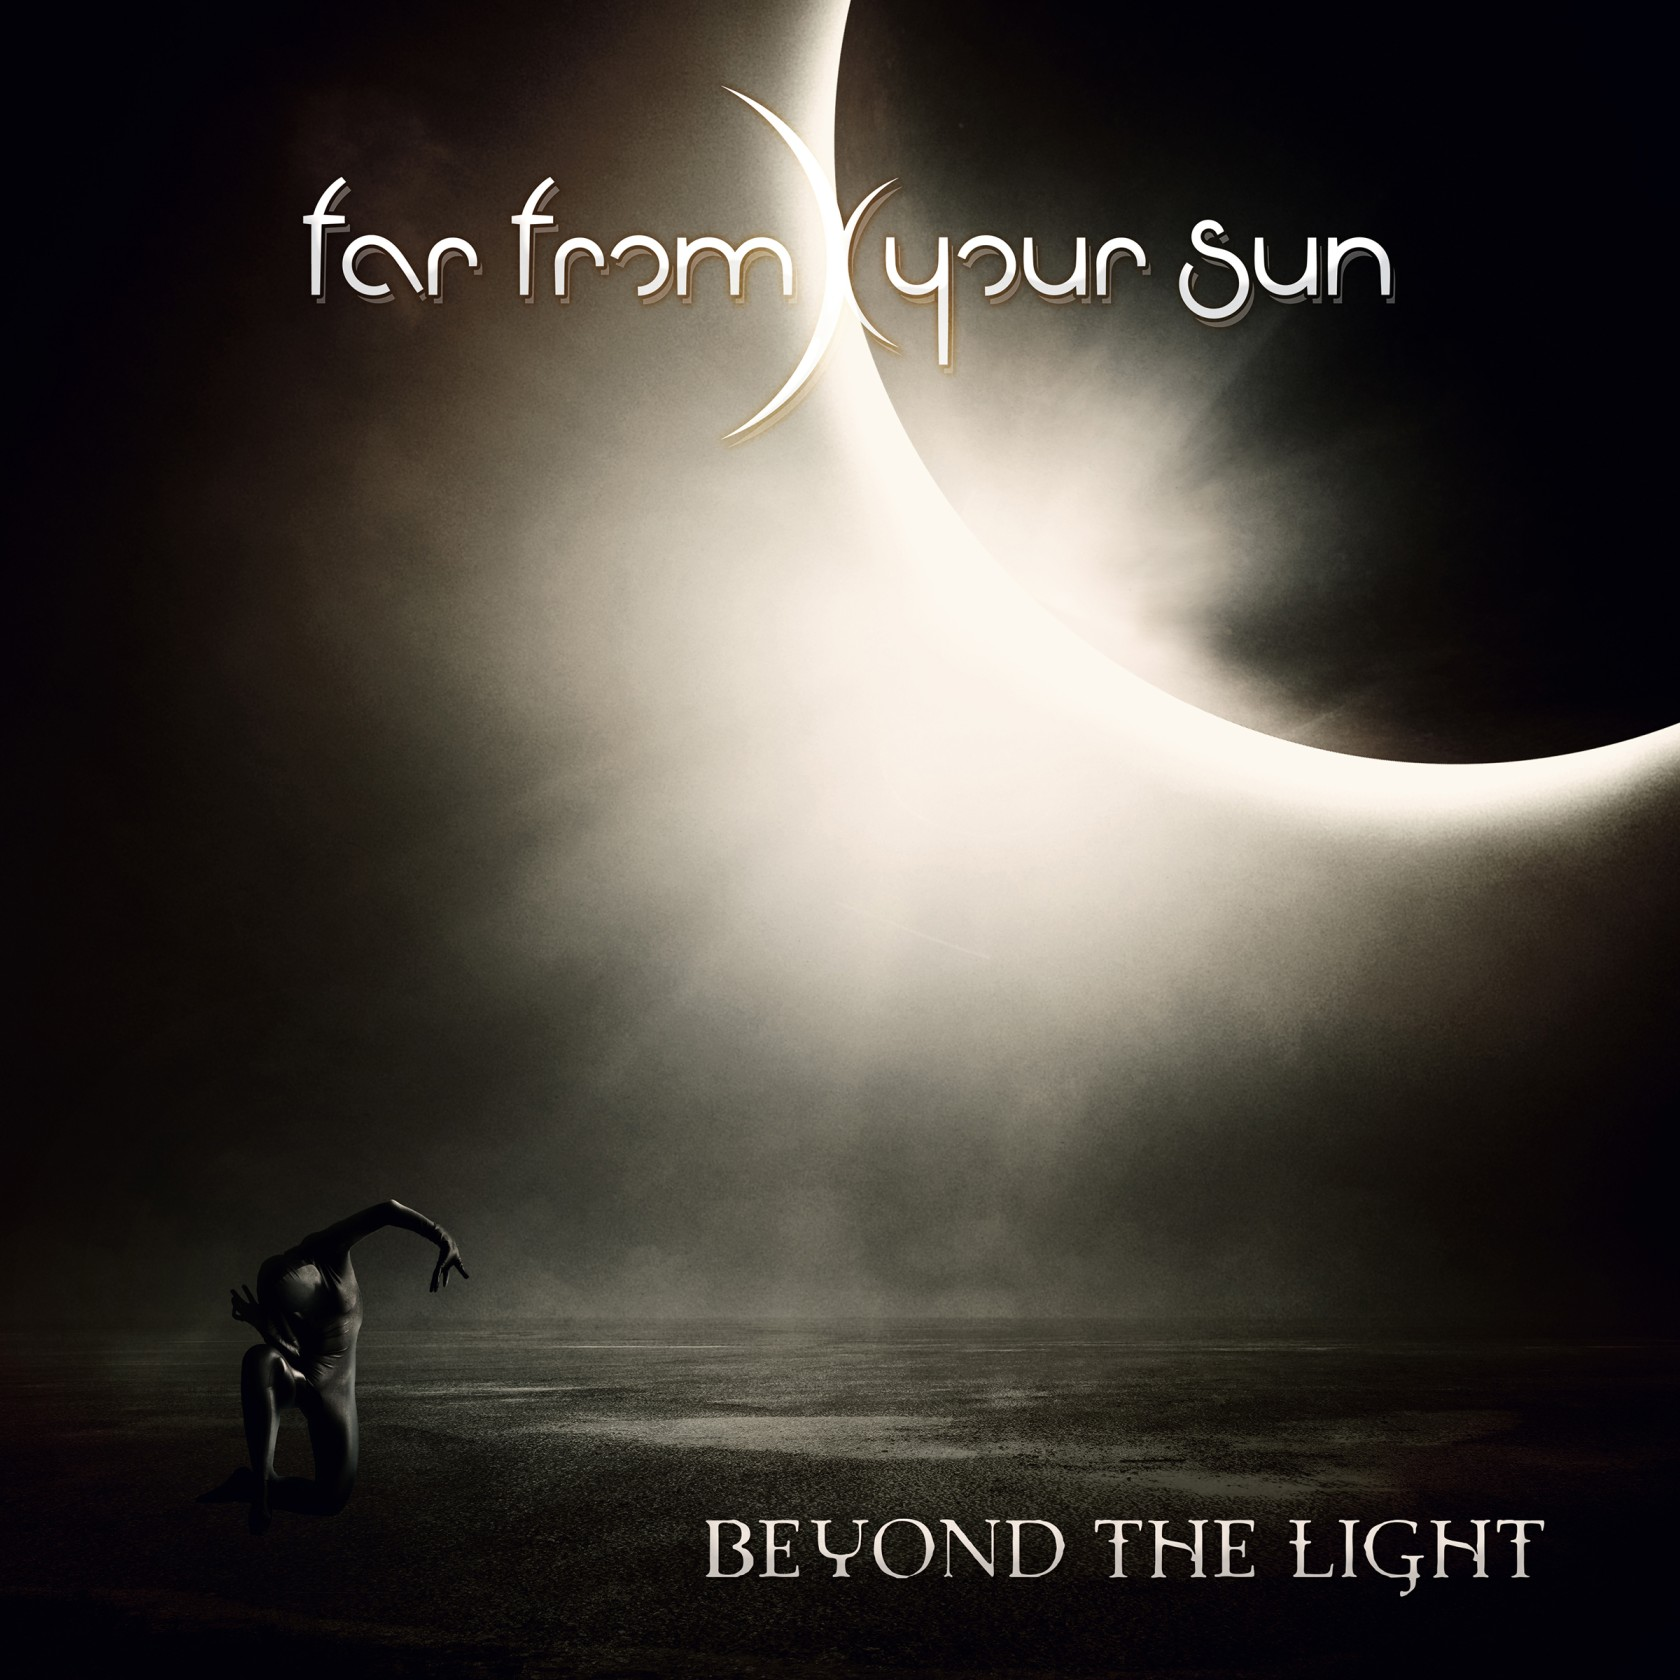 EP titled Beyond the Light